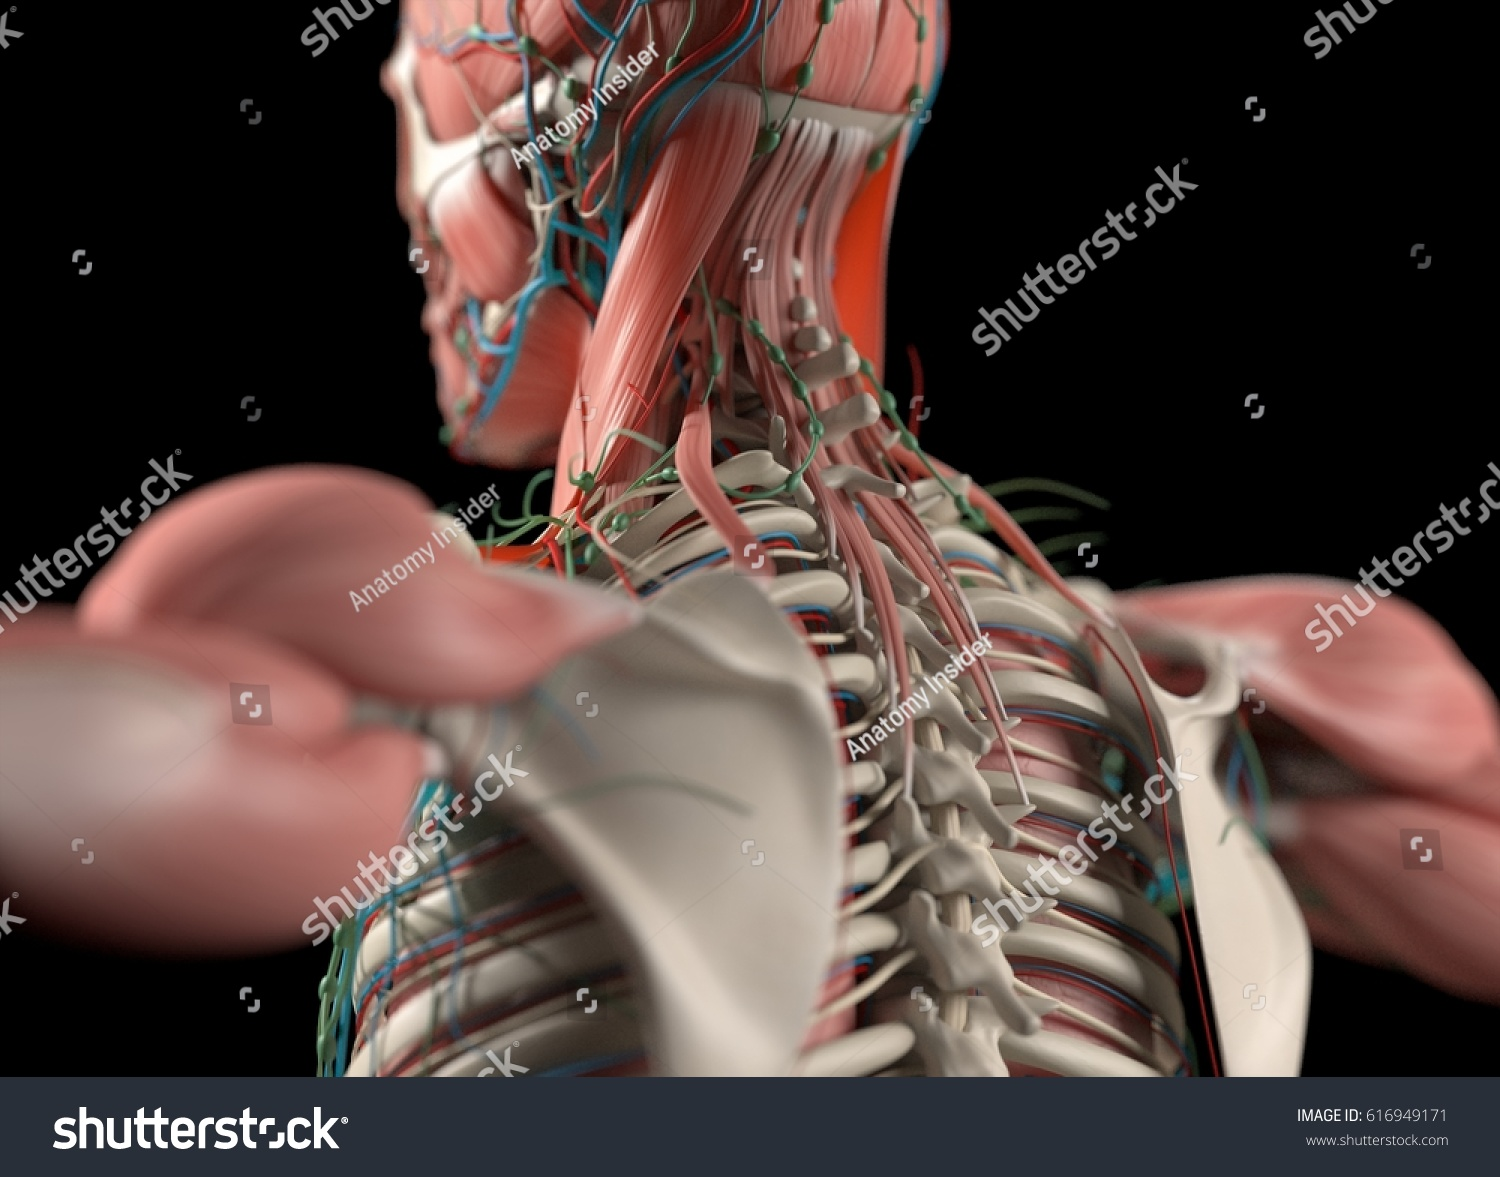 Royalty Free Stock Illustration Of Human Anatomy Back Neck Spine